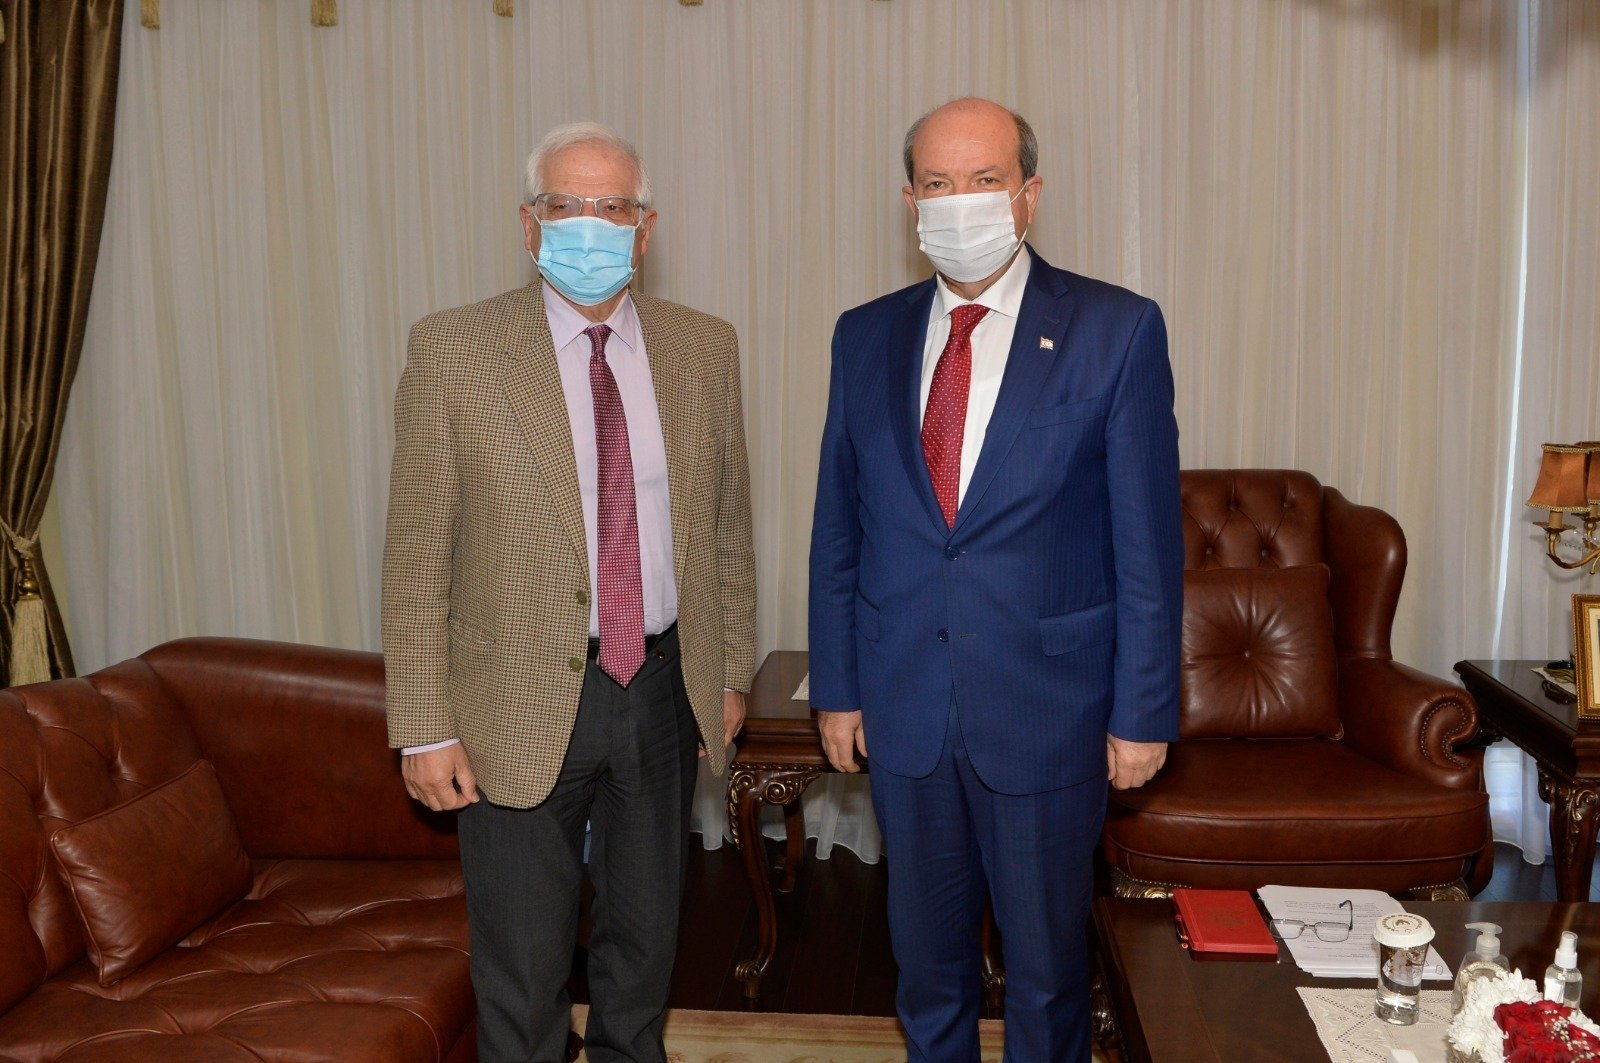 EU Foreign Policy Chief Josep Borrell poses with TRNC President Ersin Tatar in Lefkoşa, on March 5, 2021 (IHA Photo)